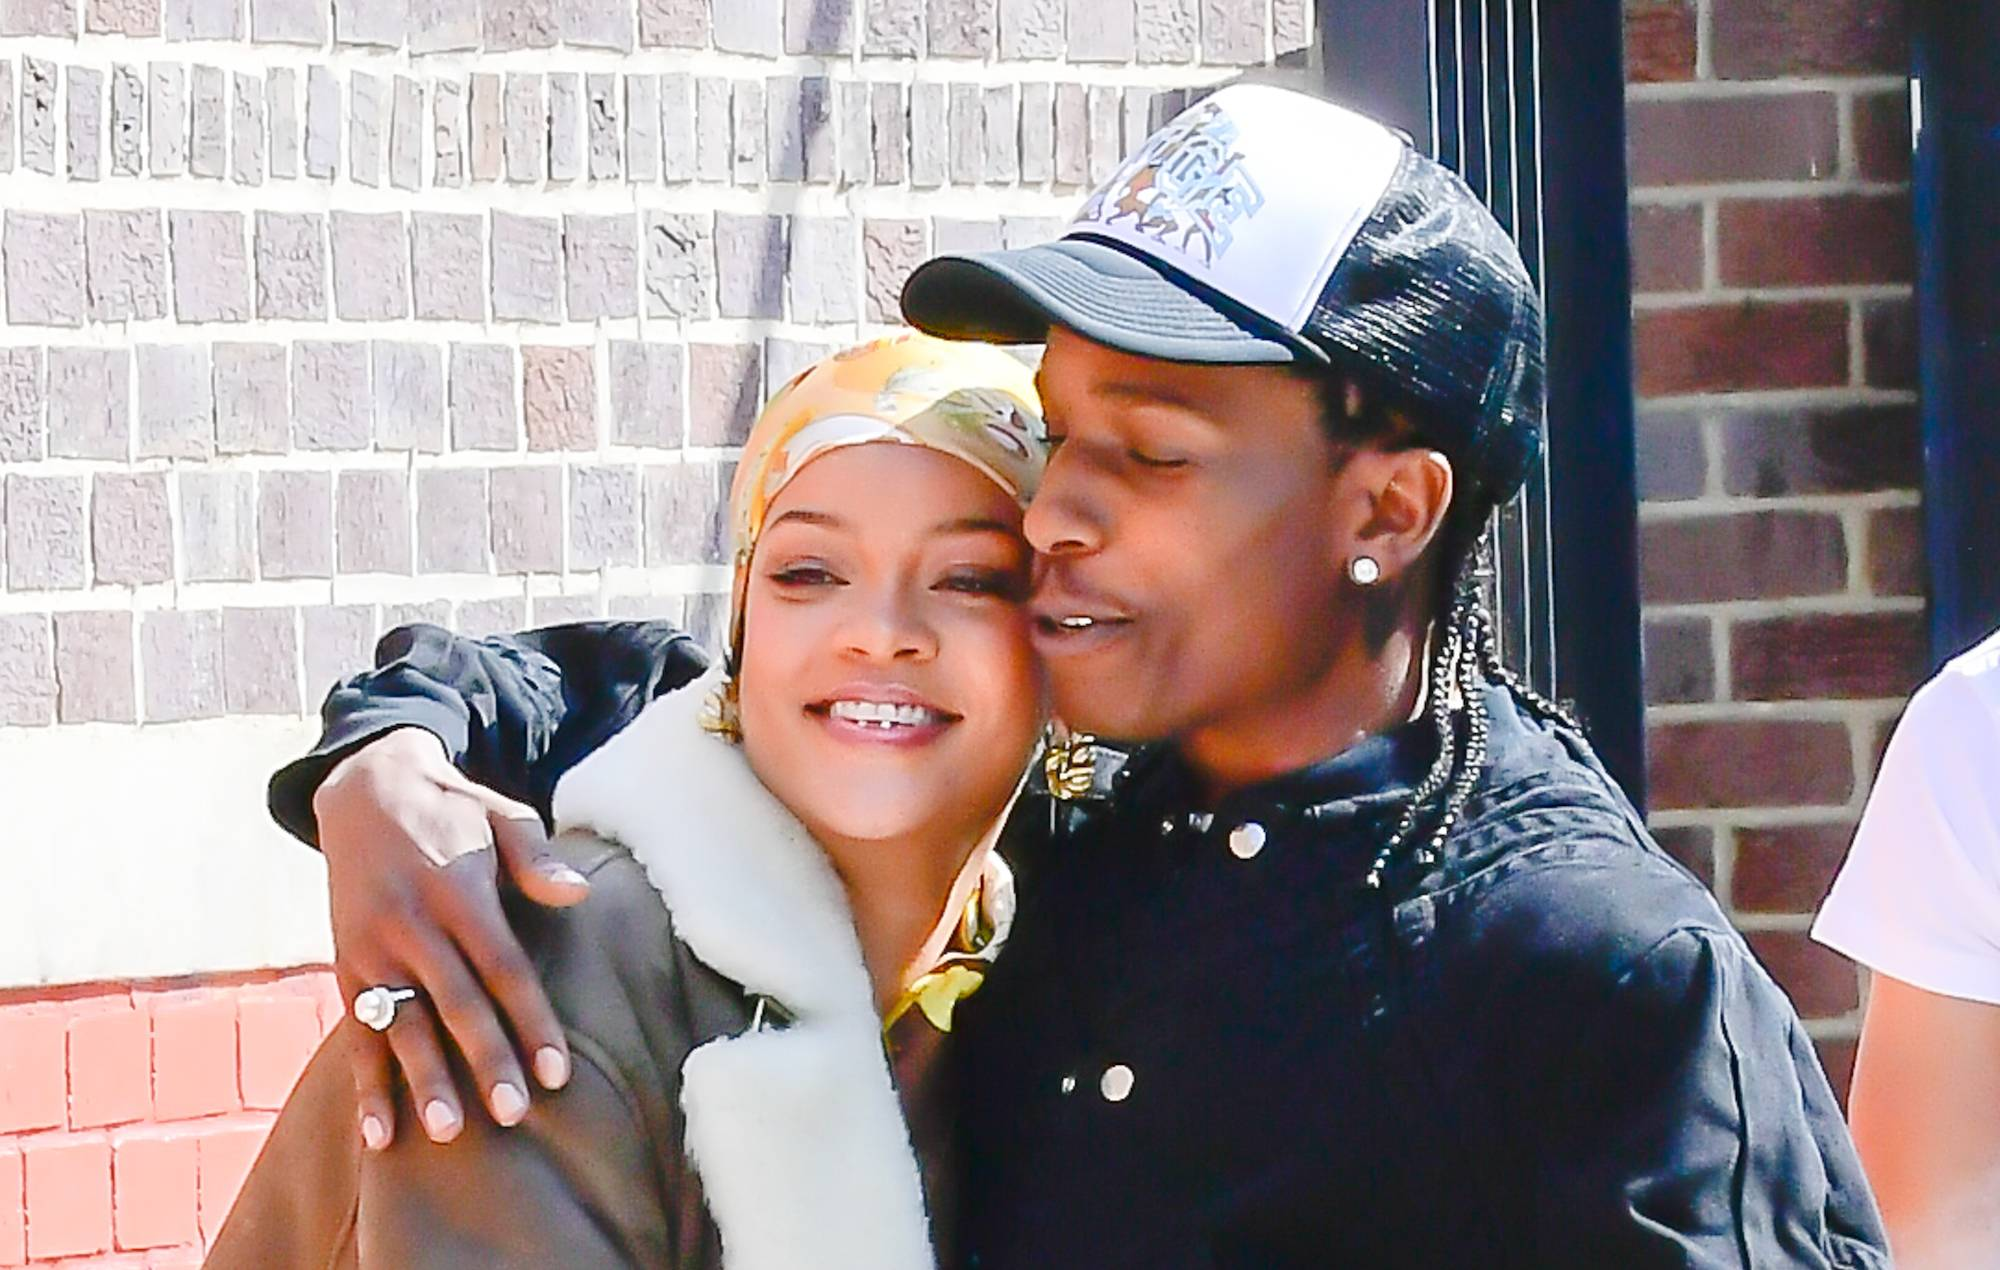 rihanna-and-asap-rocky-have-natural-chemistry-source-says-their-love-is-sincere-and-real